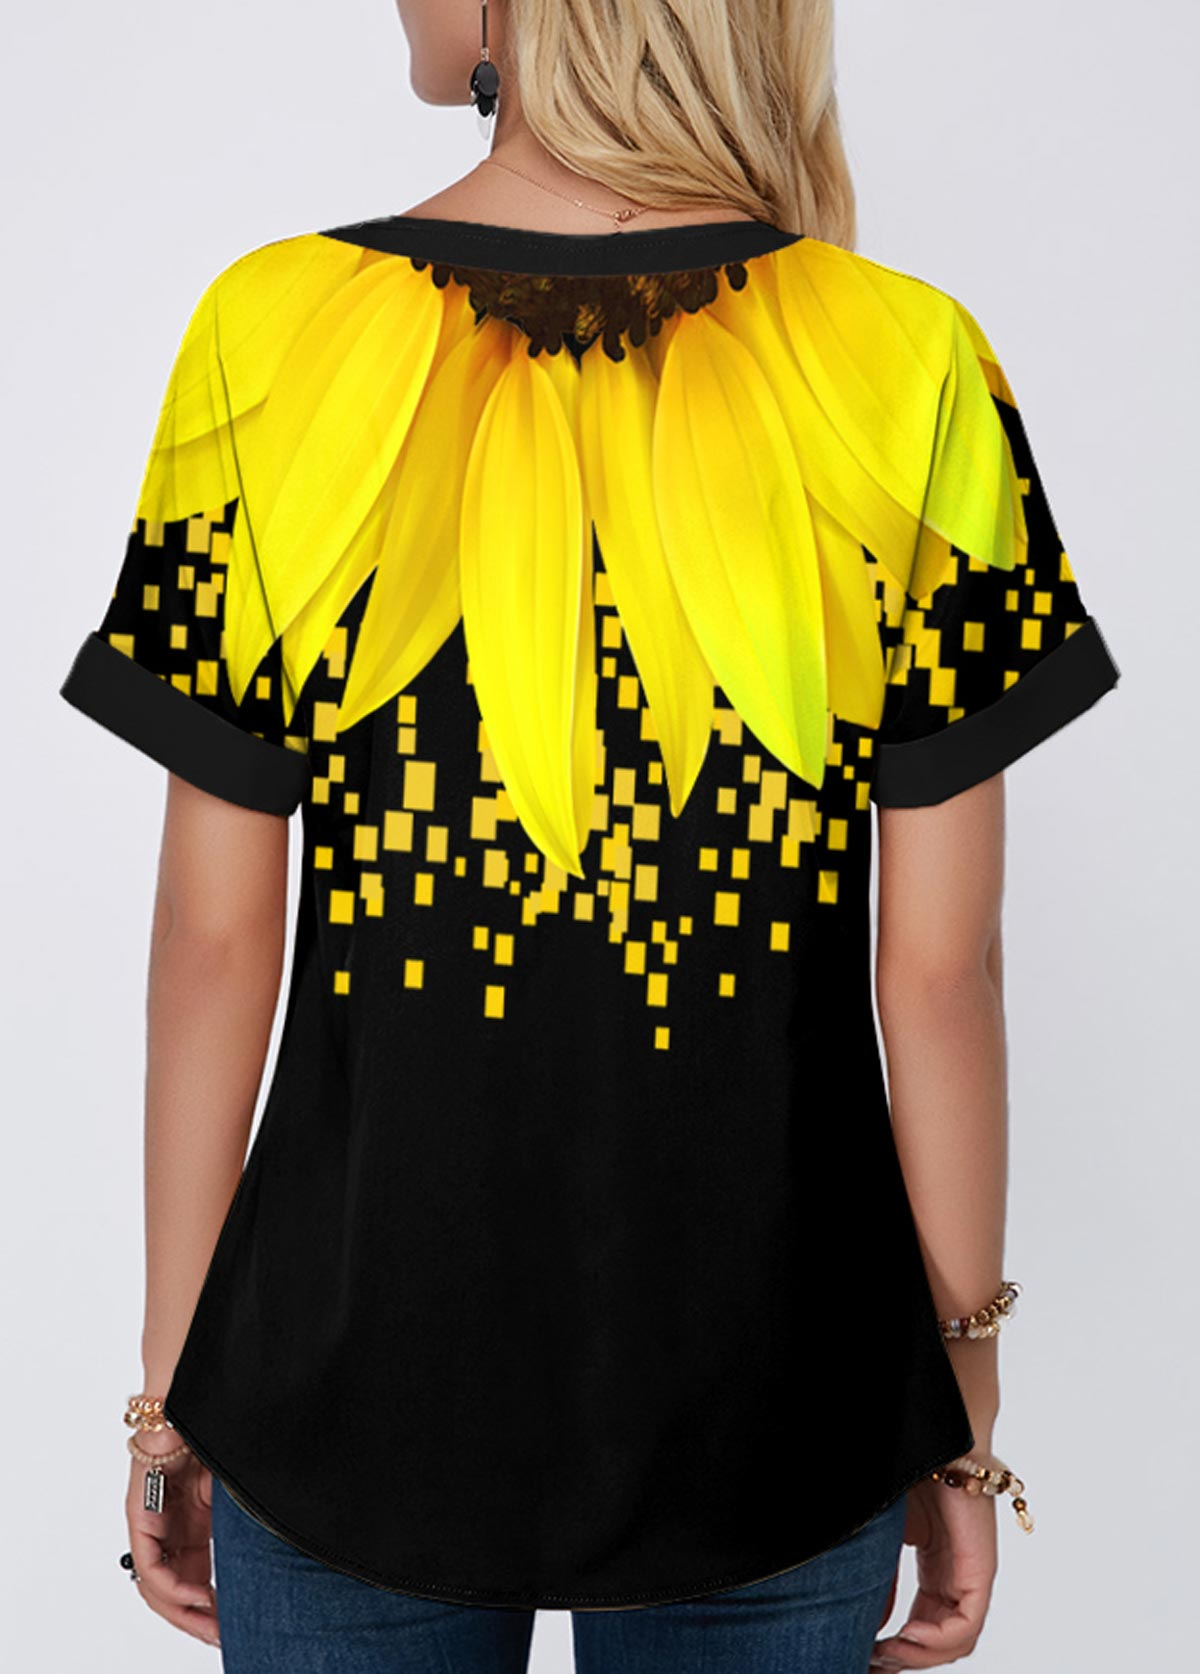 Lace Up Short Sleeve Sunflower Print Blouse